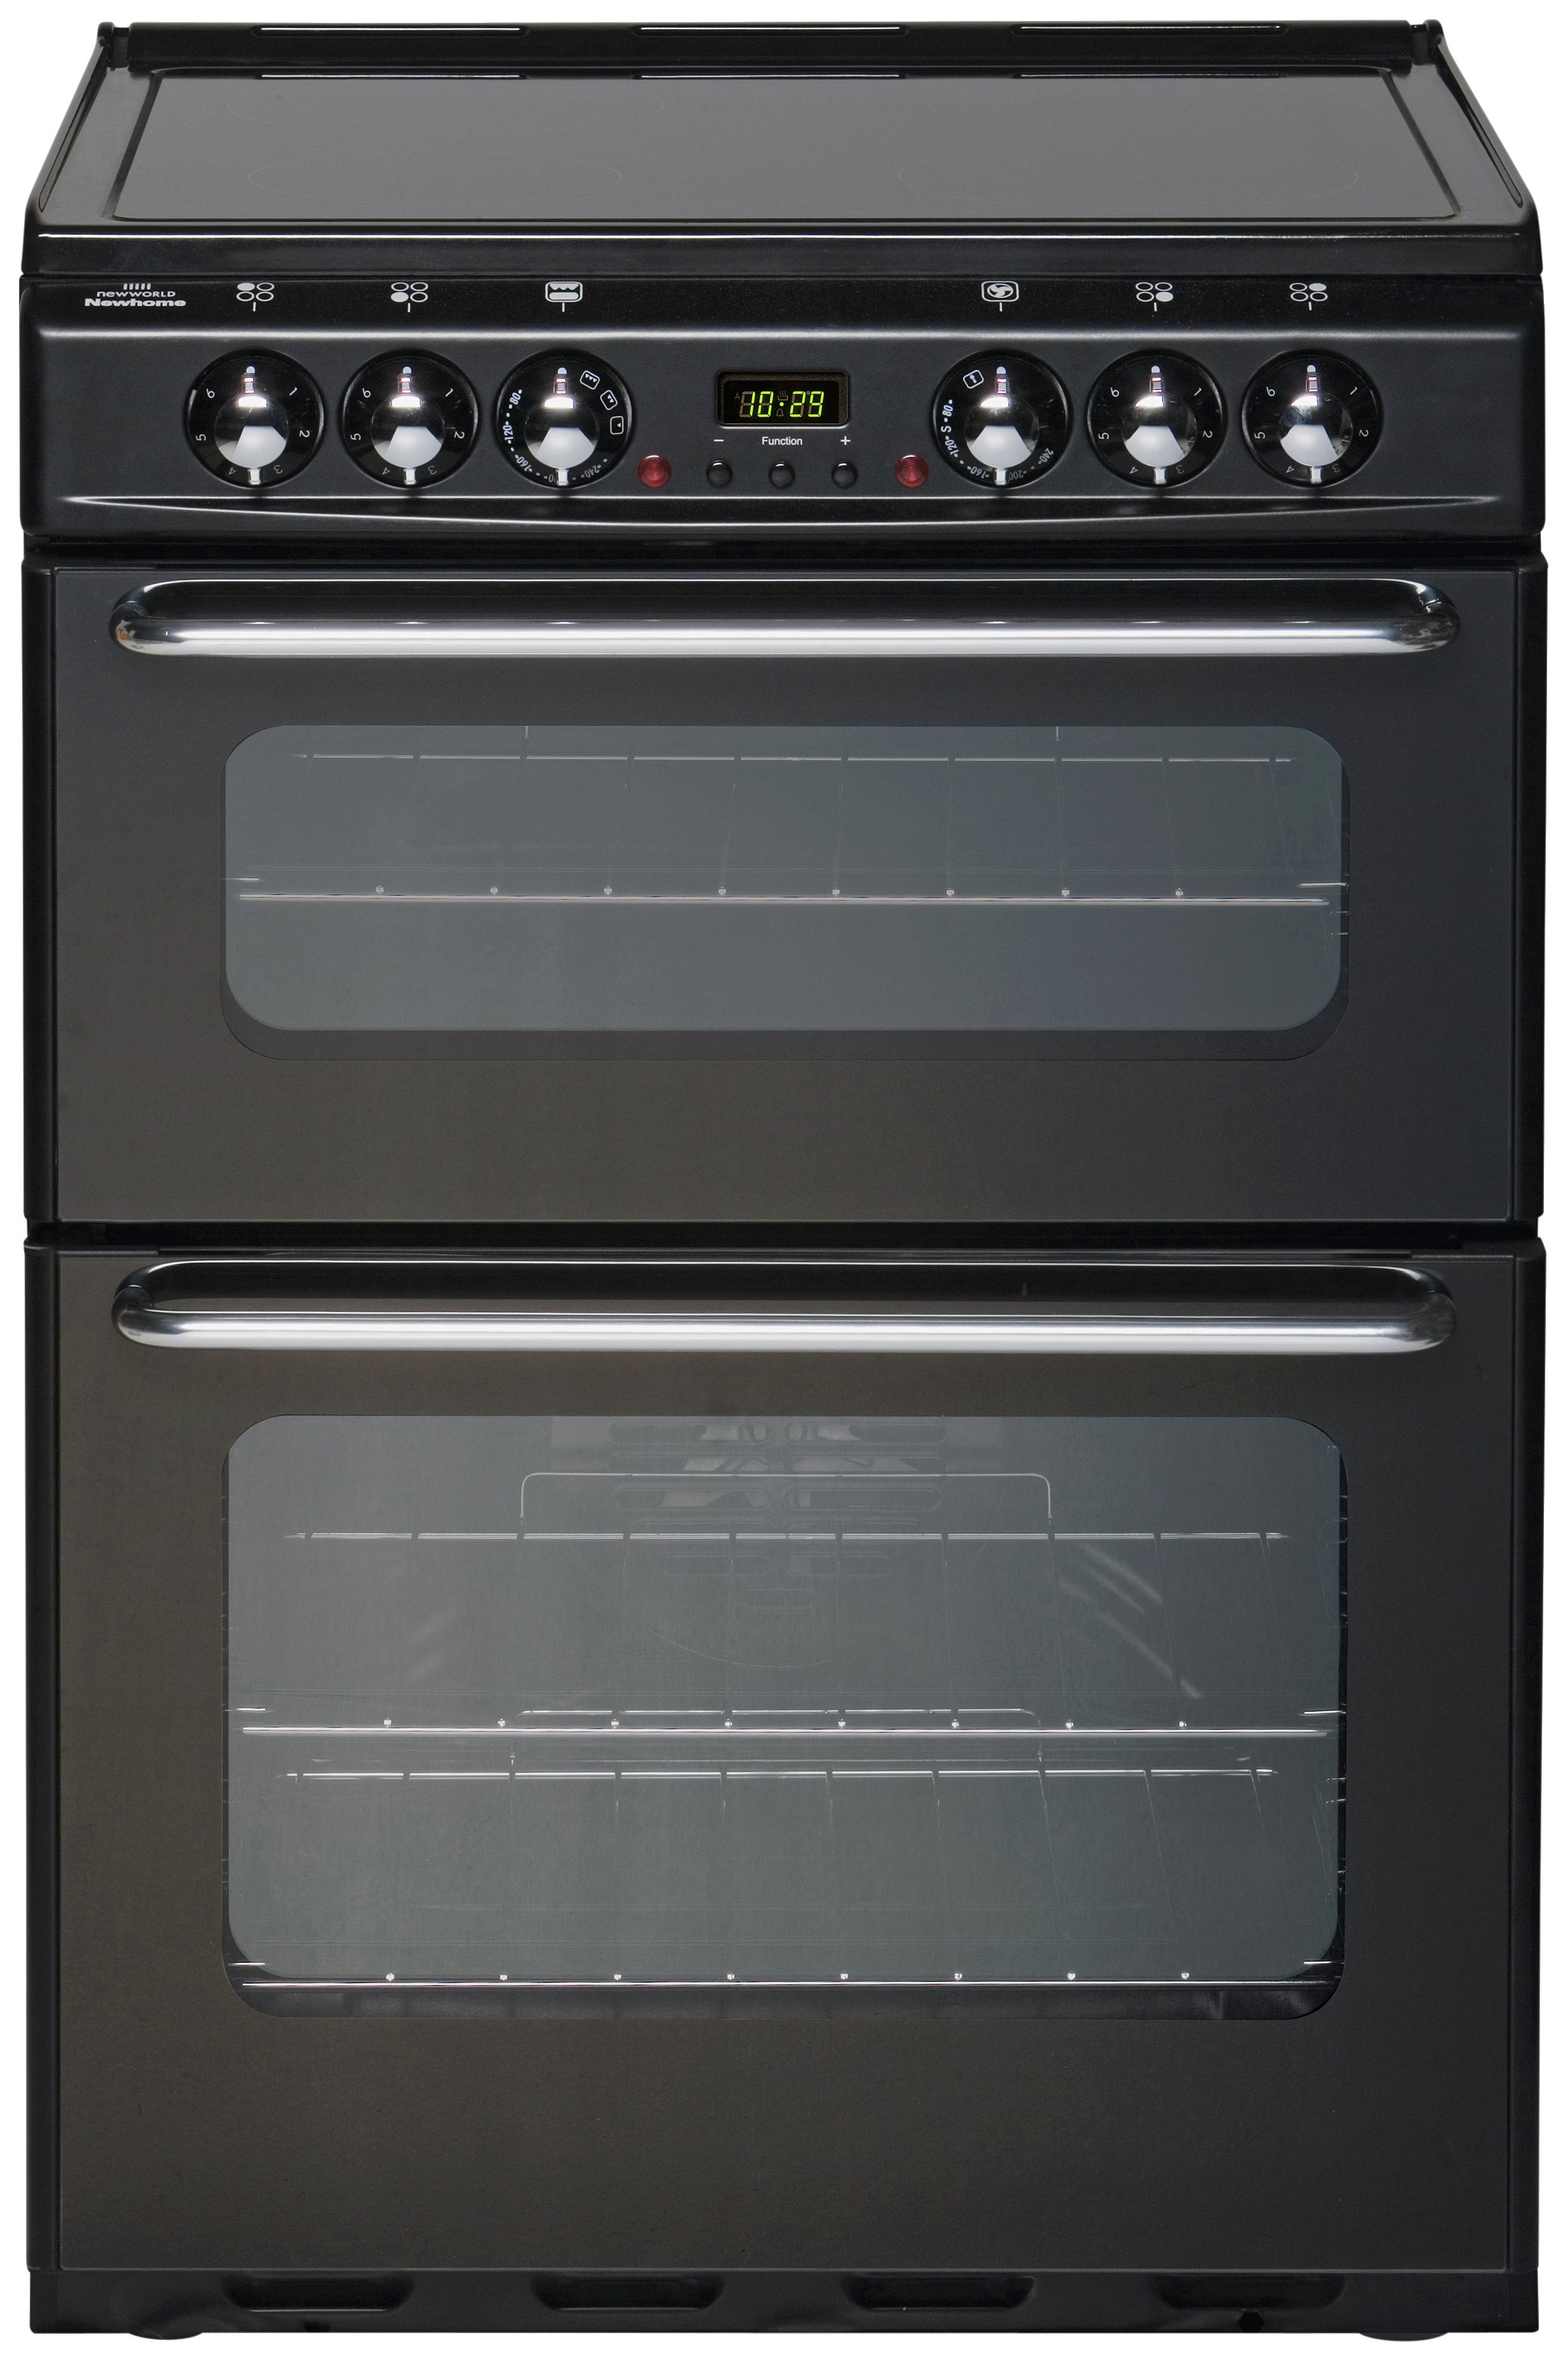 New World - EC600DOm Double Electric Cooker - Black